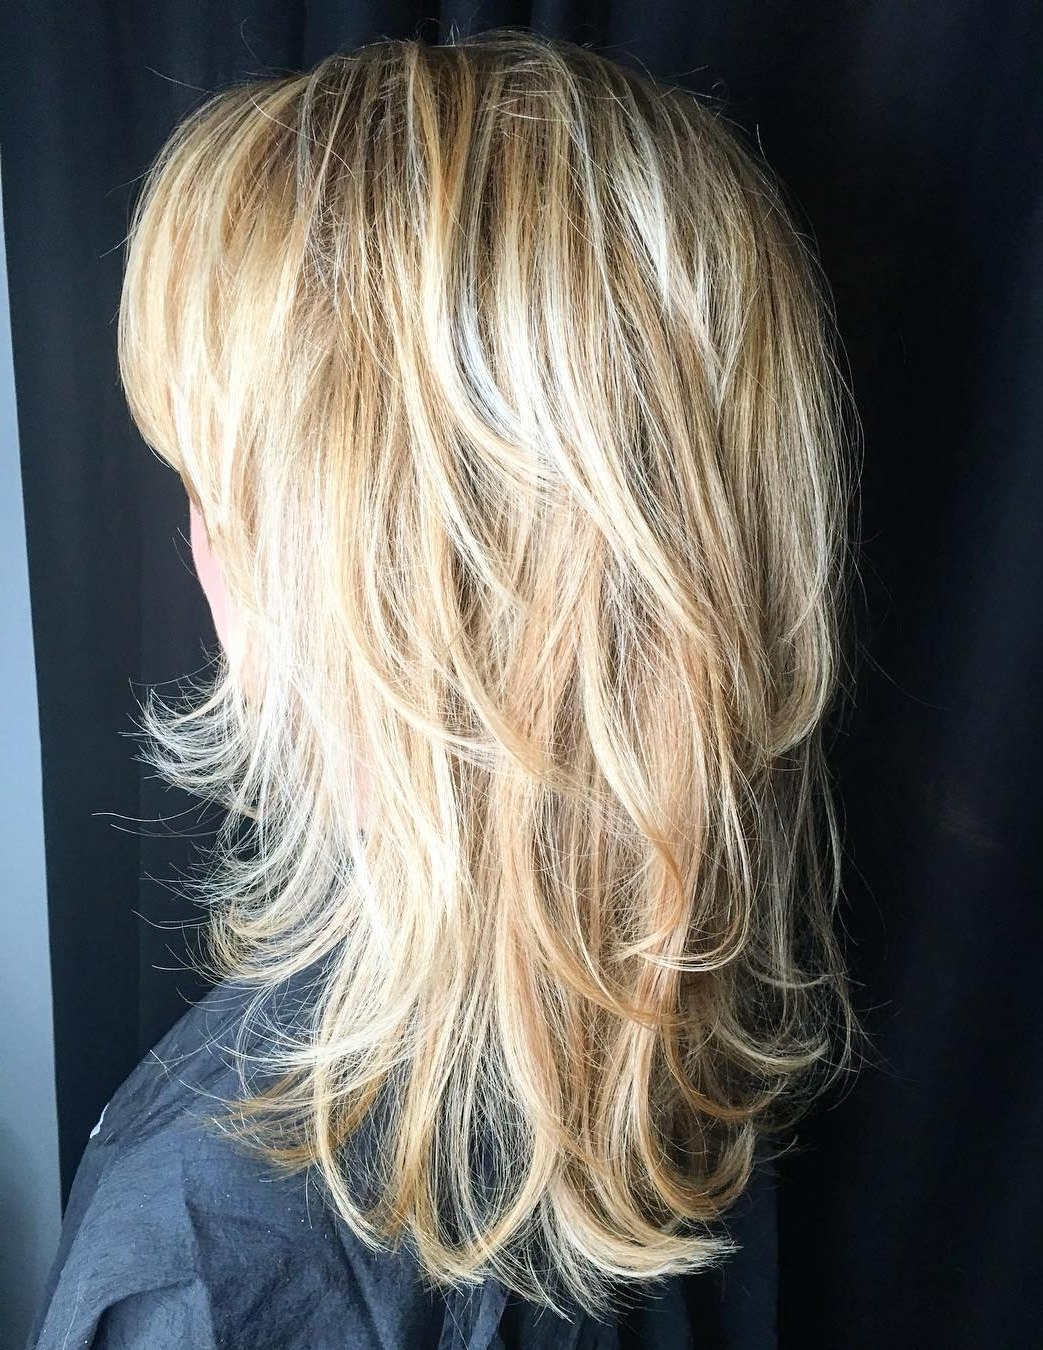 Recent Voluminous And Carefree Loose Look Blonde Hairstyles Inside 50 Lovely Long Shag Haircuts For Effortless Stylish Looks (Gallery 14 of 20)